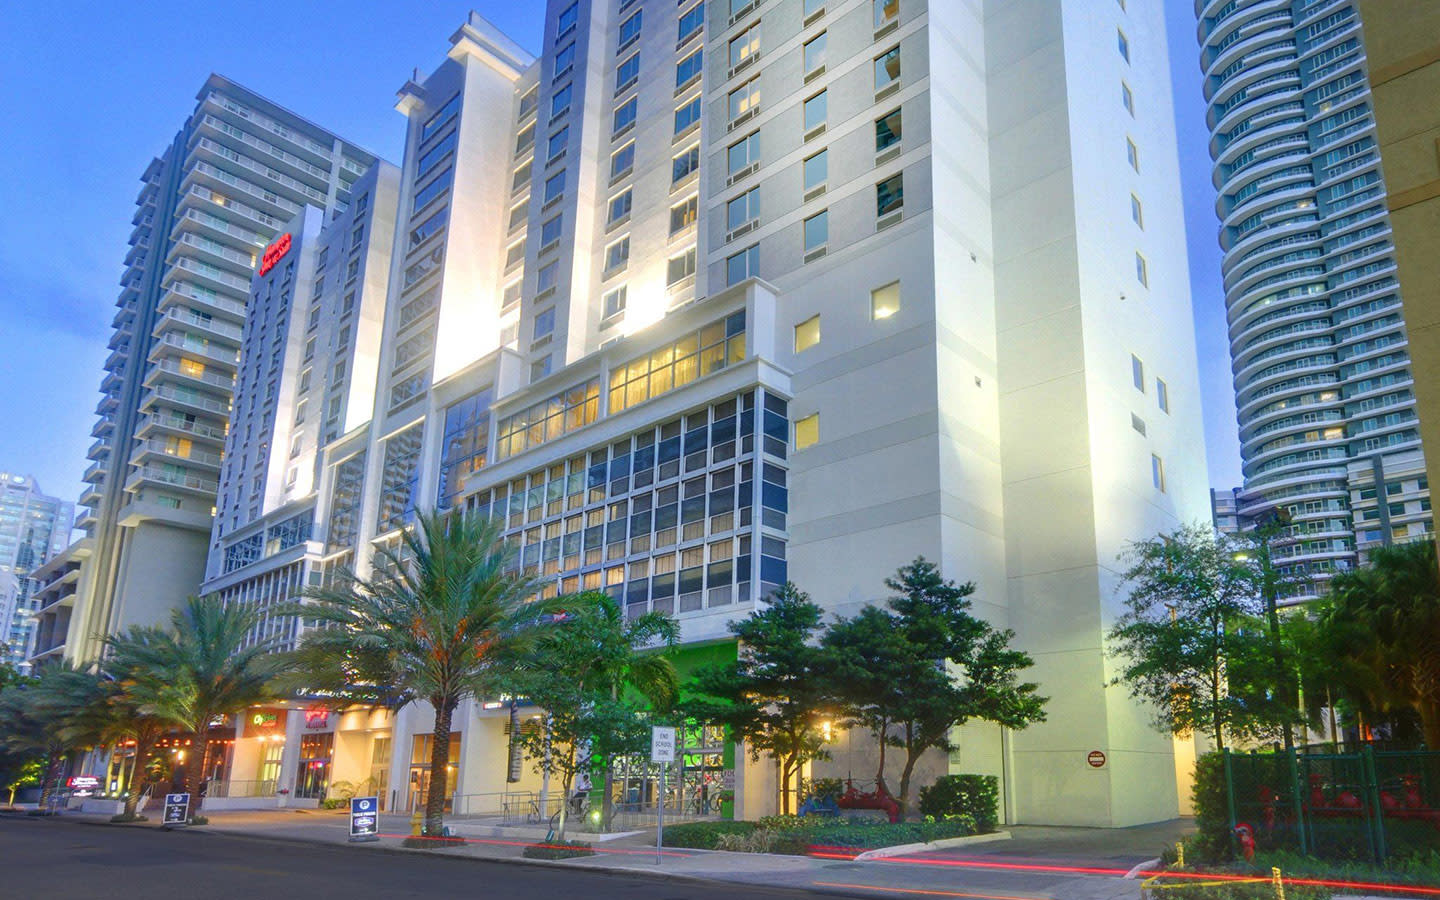 Hampton Inn & Suites by Hilton Miami Brickell Centro